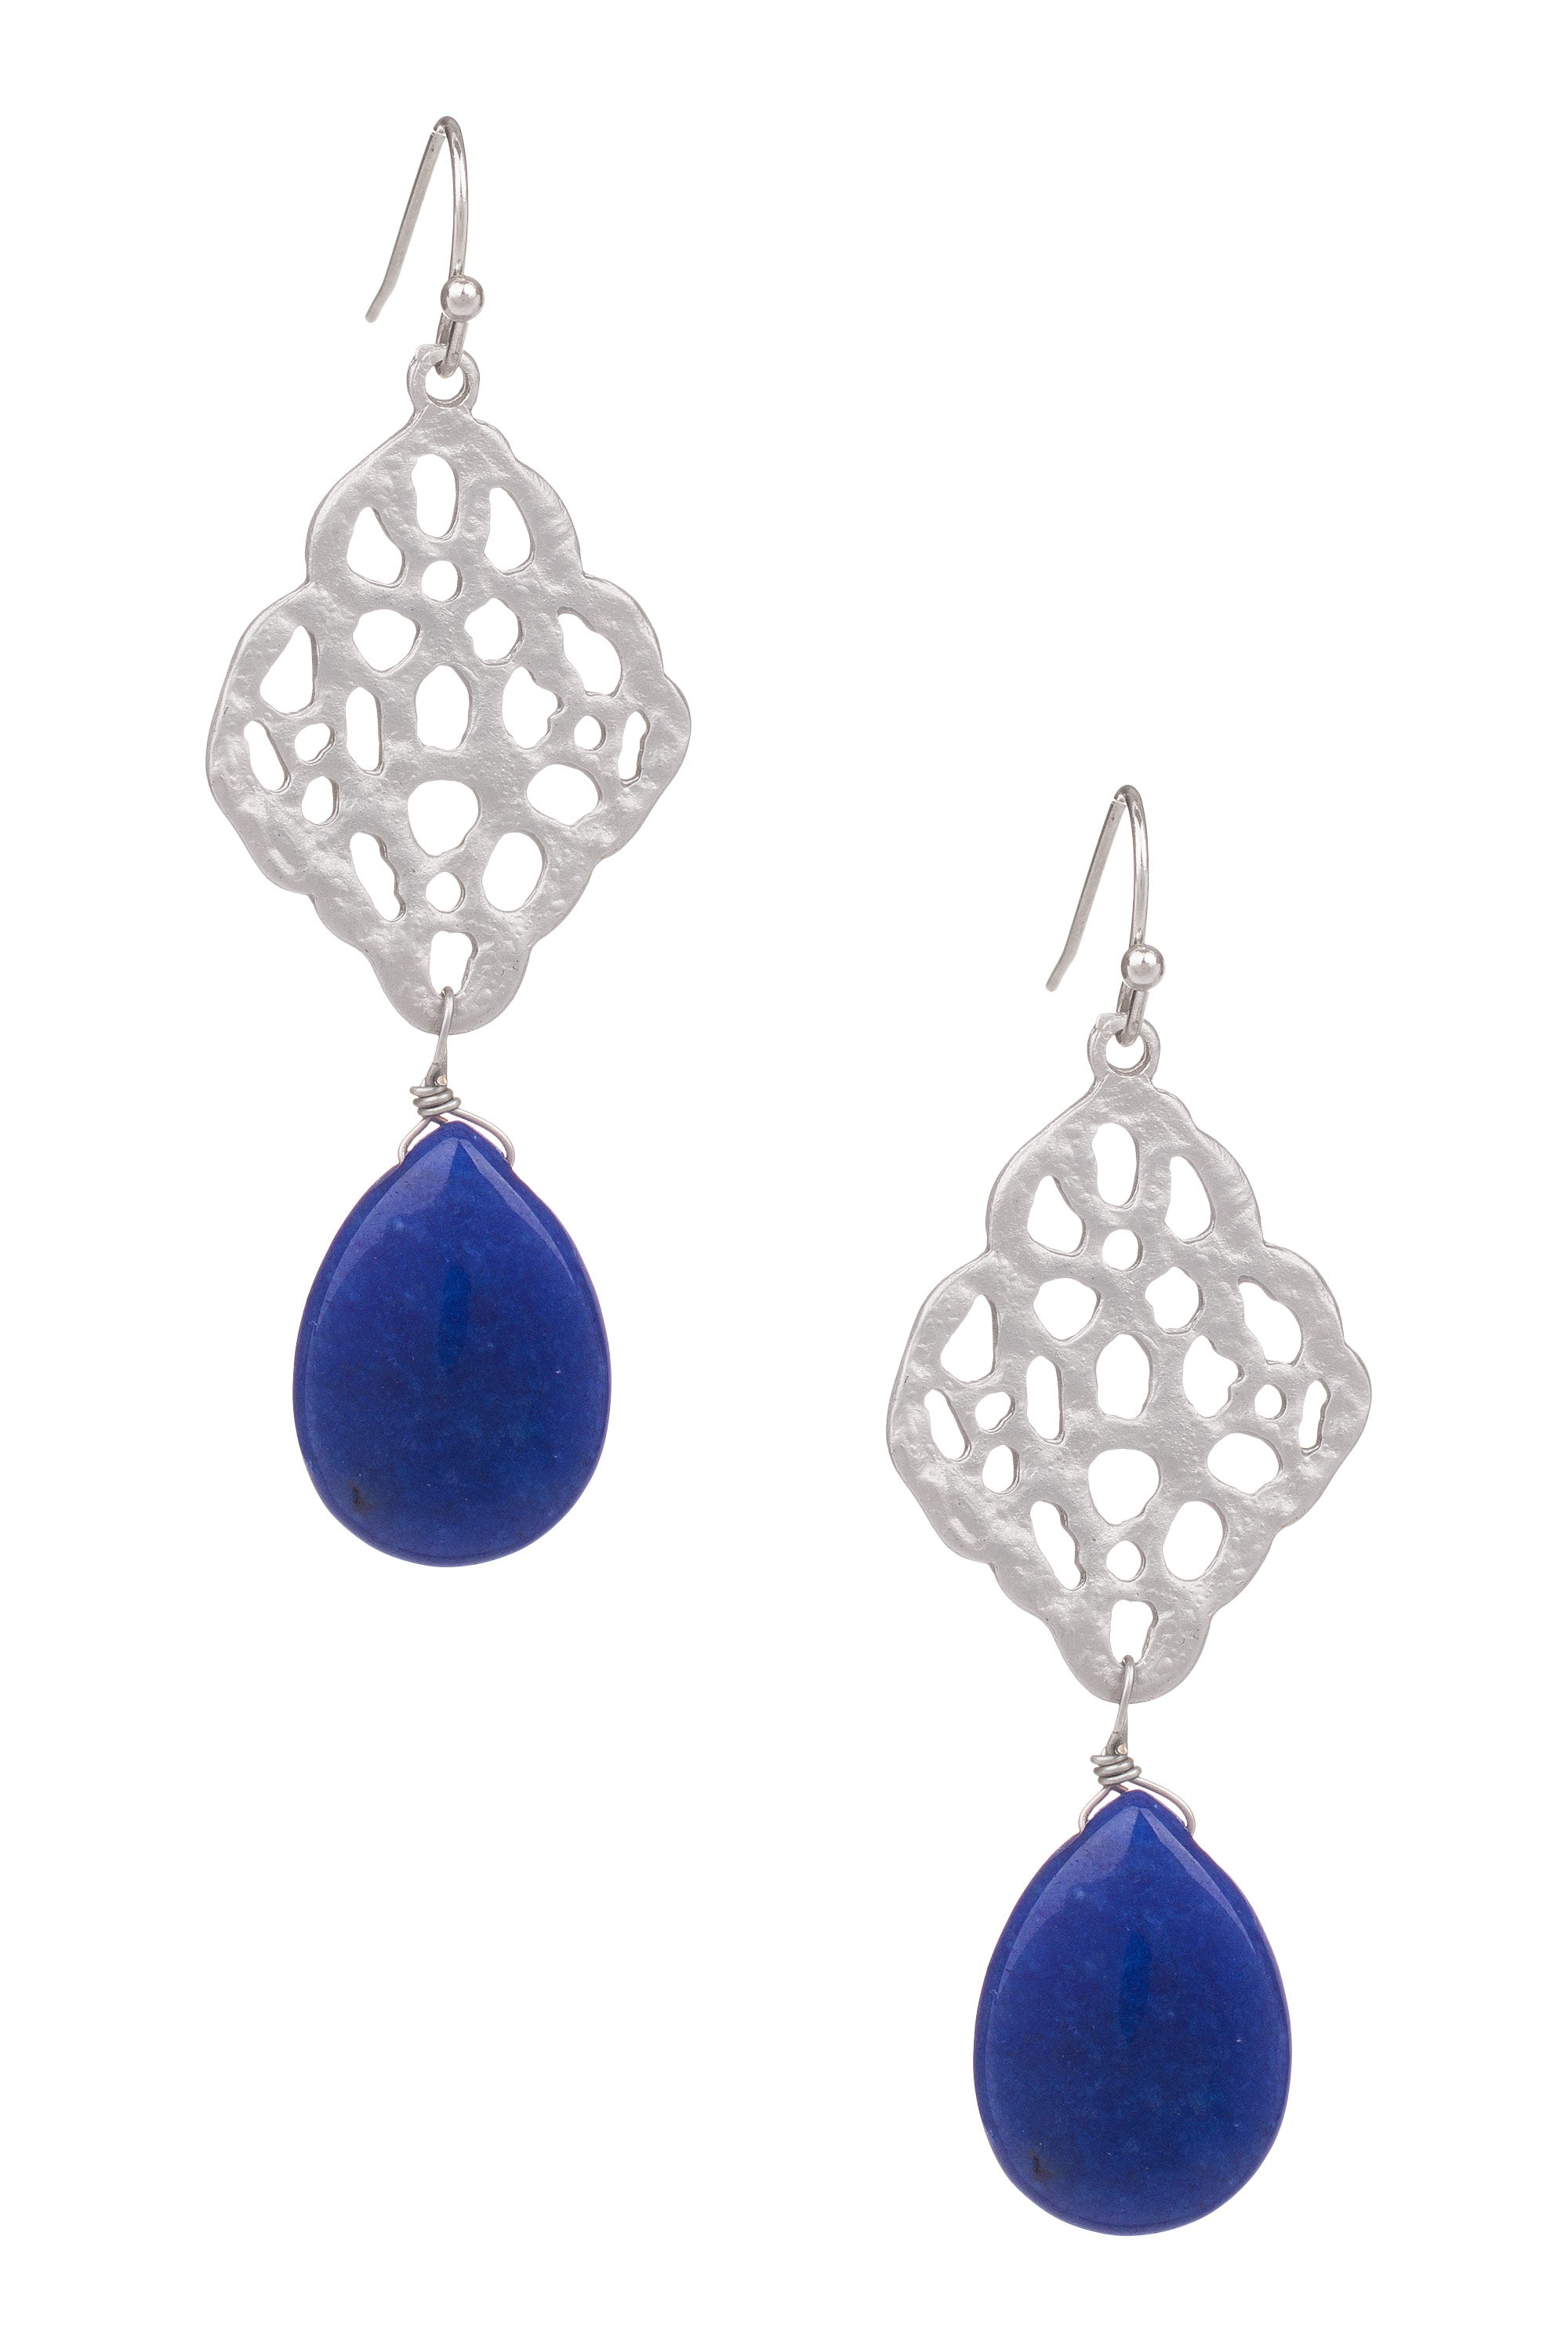 Type 2 Cool Cobalt Earrings